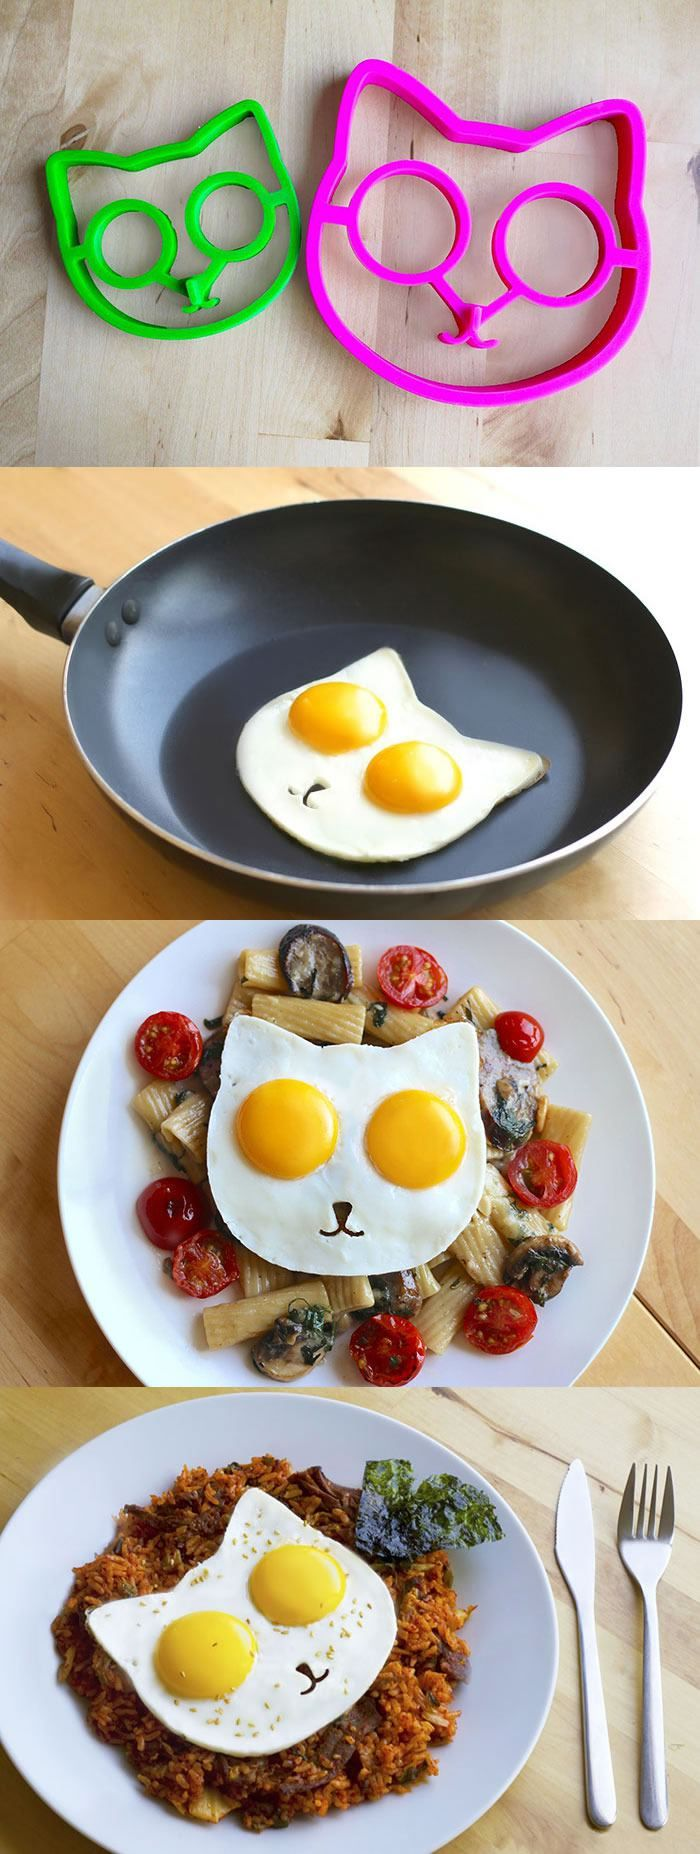 Cat-Shaped Egg Mold Lets You Make Breakfast Kitty-Side Up. http://www.foodandwine.com/fwx/secrets/cat-shaped-egg-mold-brings-out-kickstarter-s-kitty-lovers https://www.kickstarter.com/projects/991279259/sunny-side-up-eggs-cat-egg-molds